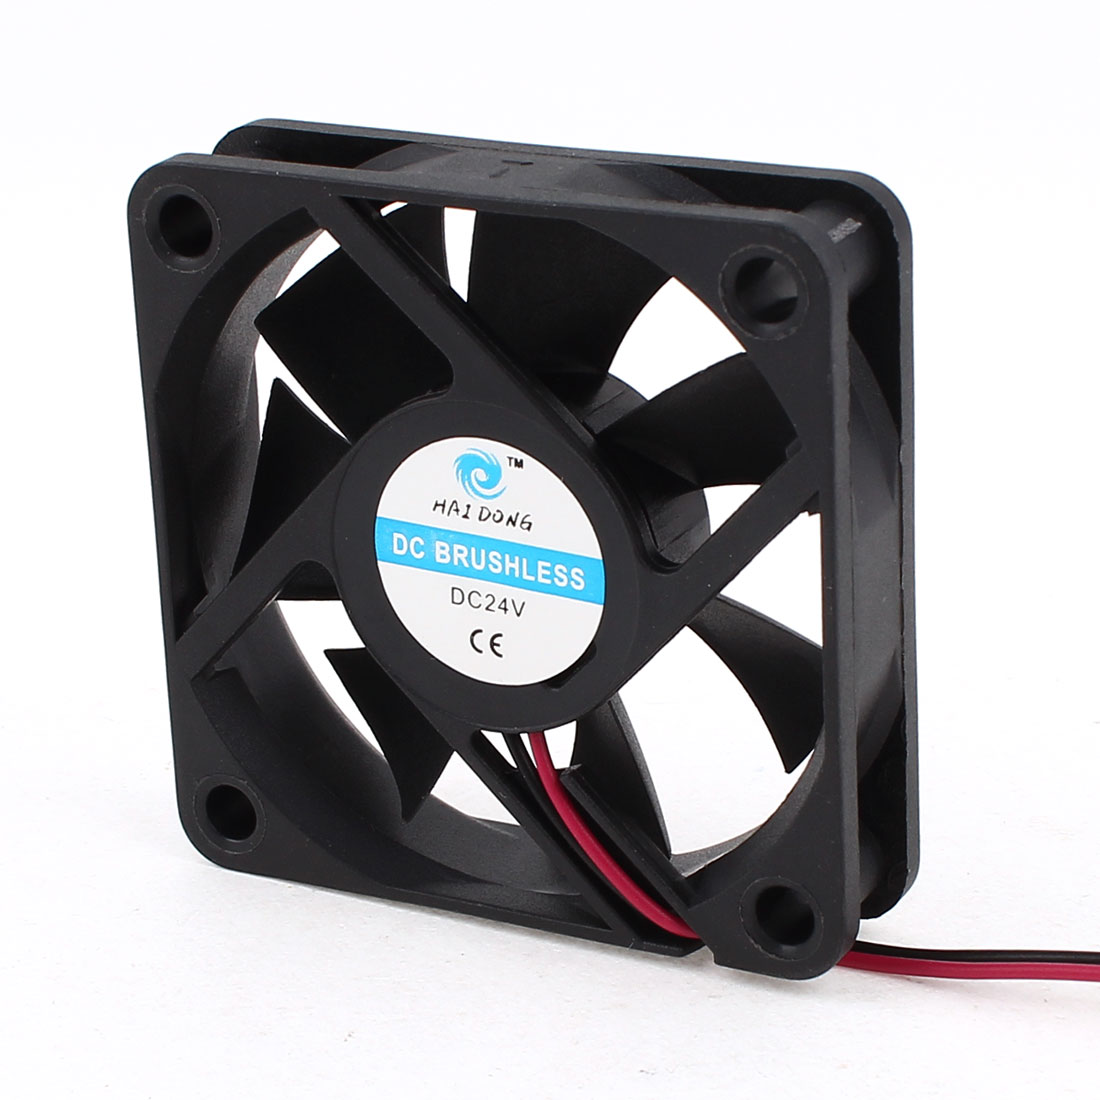 60mm x 15mm 6015 Brushless Cooling Fan DC 24V for Computer Case CPU Cooler